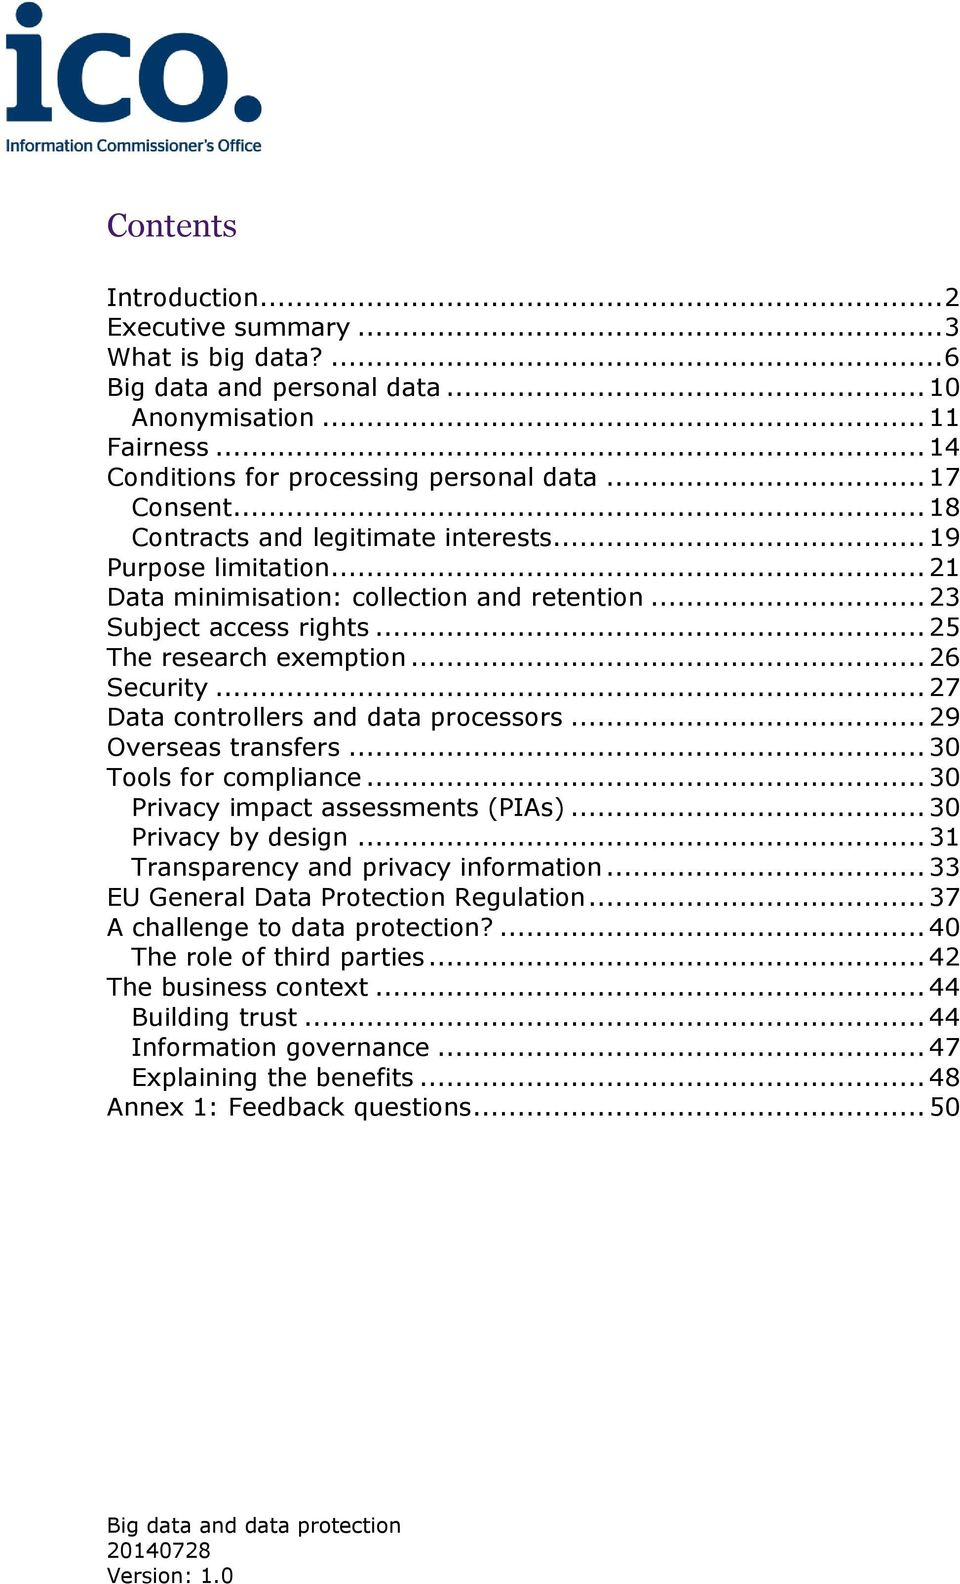 .. 27 Data controllers and data processors... 29 Overseas transfers... 30 Tools for compliance... 30 Privacy impact assessments (PIAs)... 30 Privacy by design... 31 Transparency and privacy information.